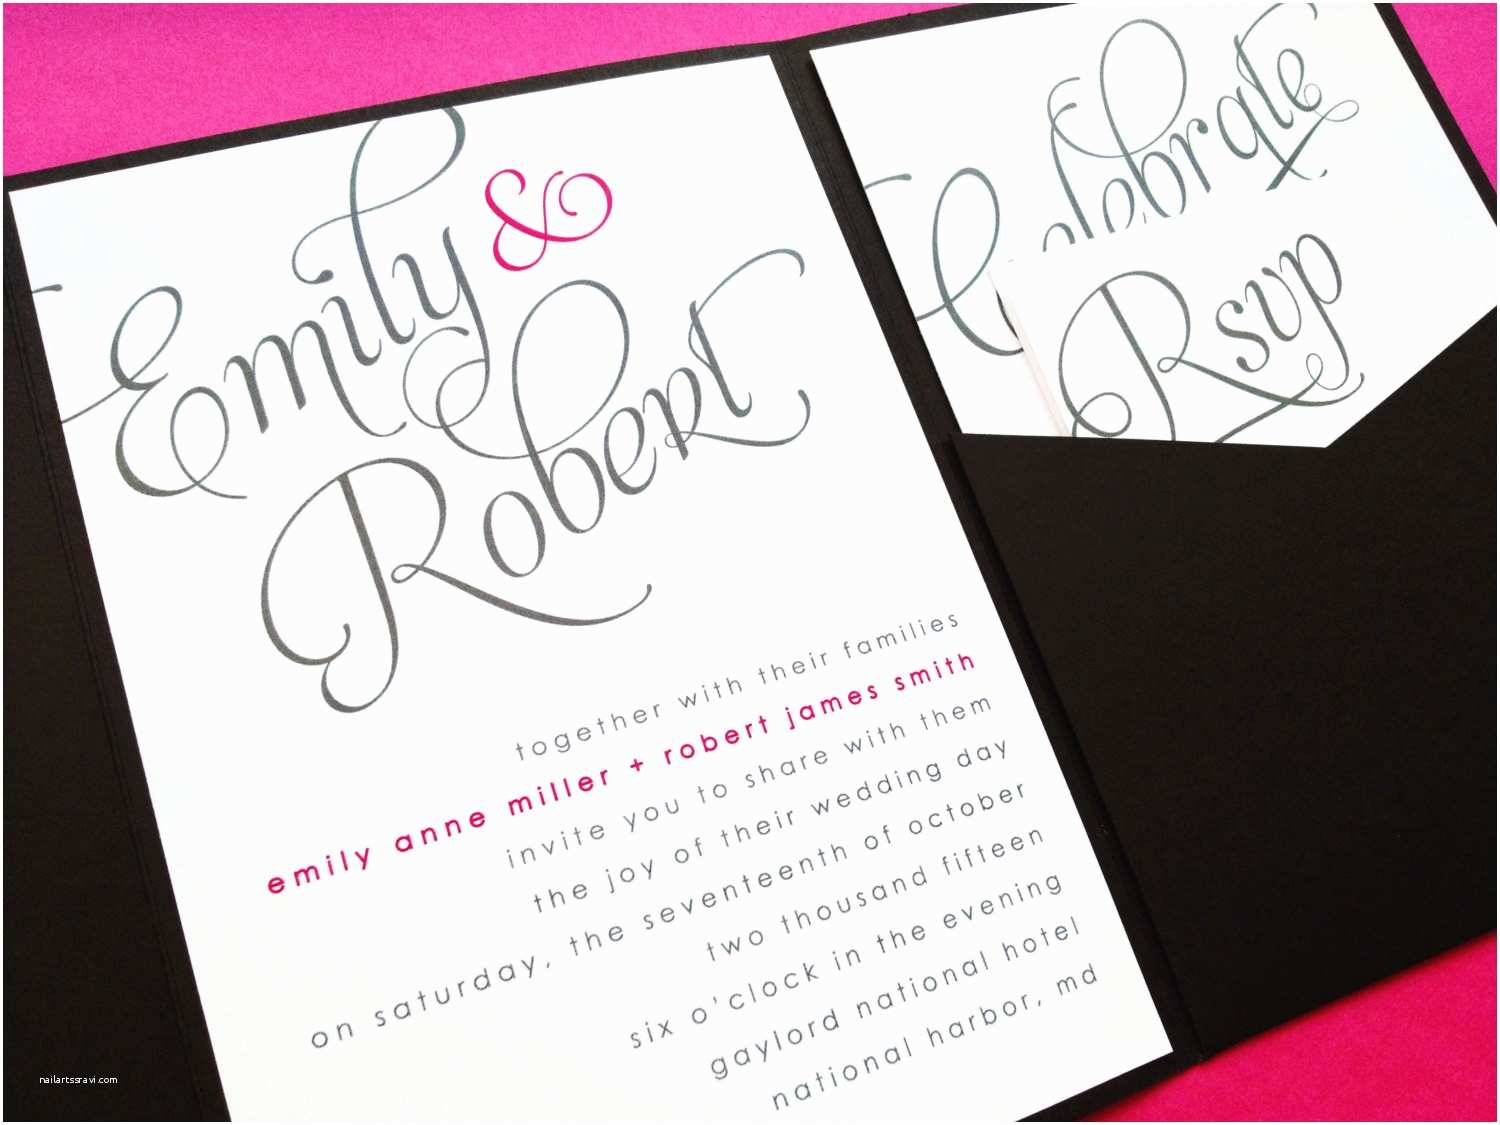 Wedding Invitation Design Images How to Personalize Your Wedding Invitations